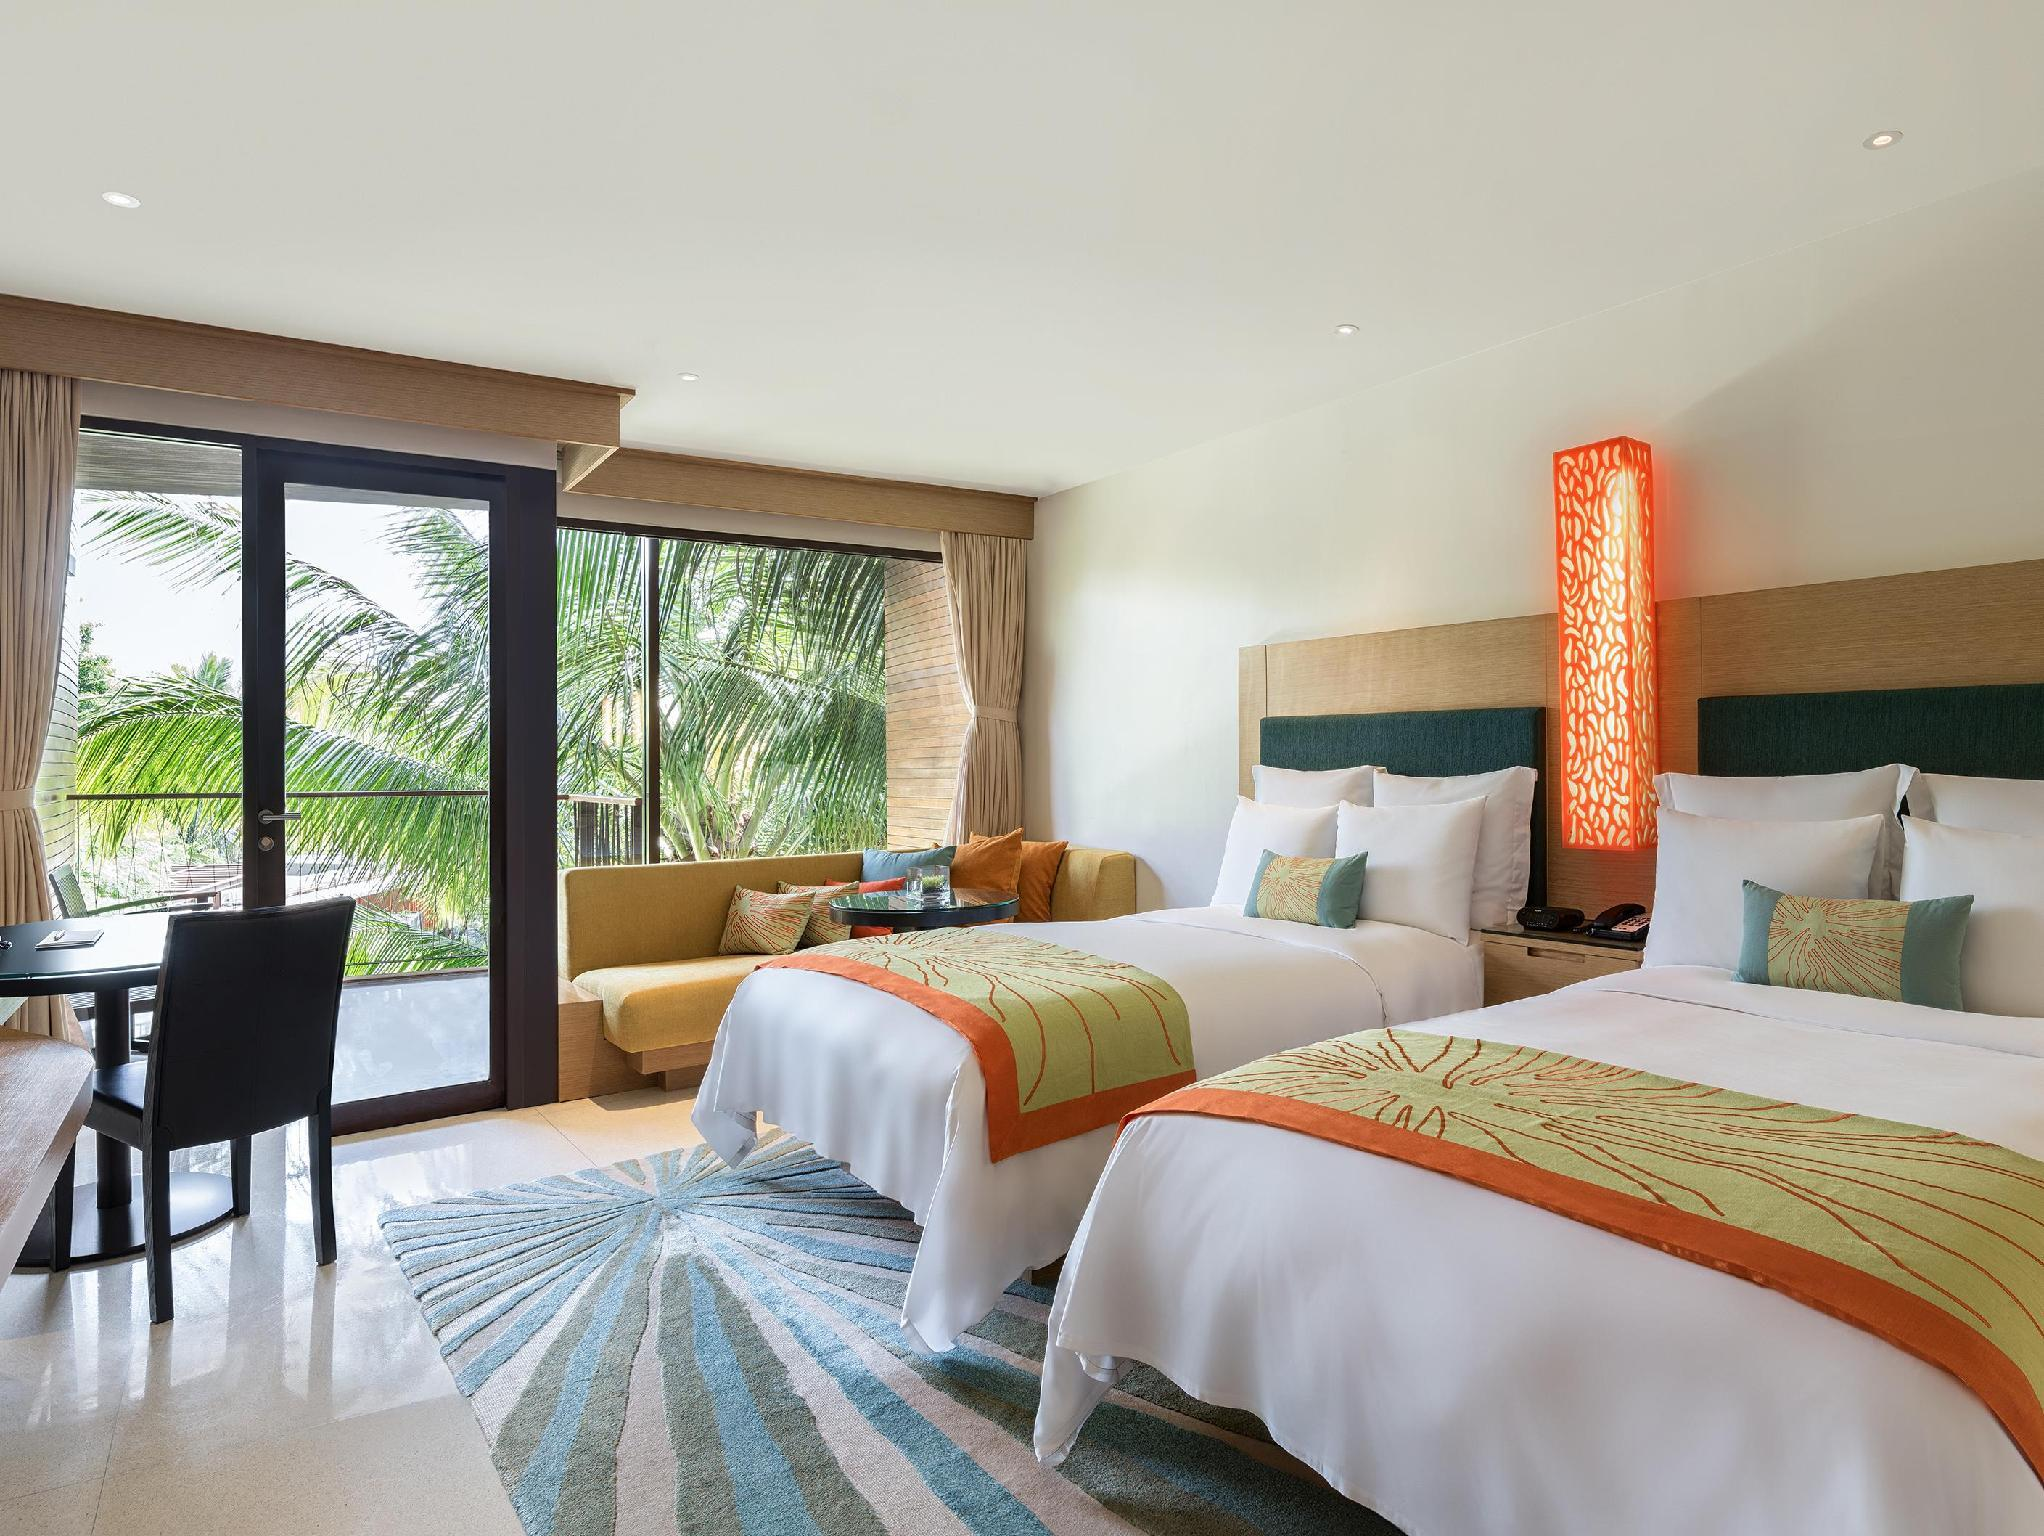 Renaissance Phuket Resort & Spa A Marriott Luxury & Lifestyle Hotel43